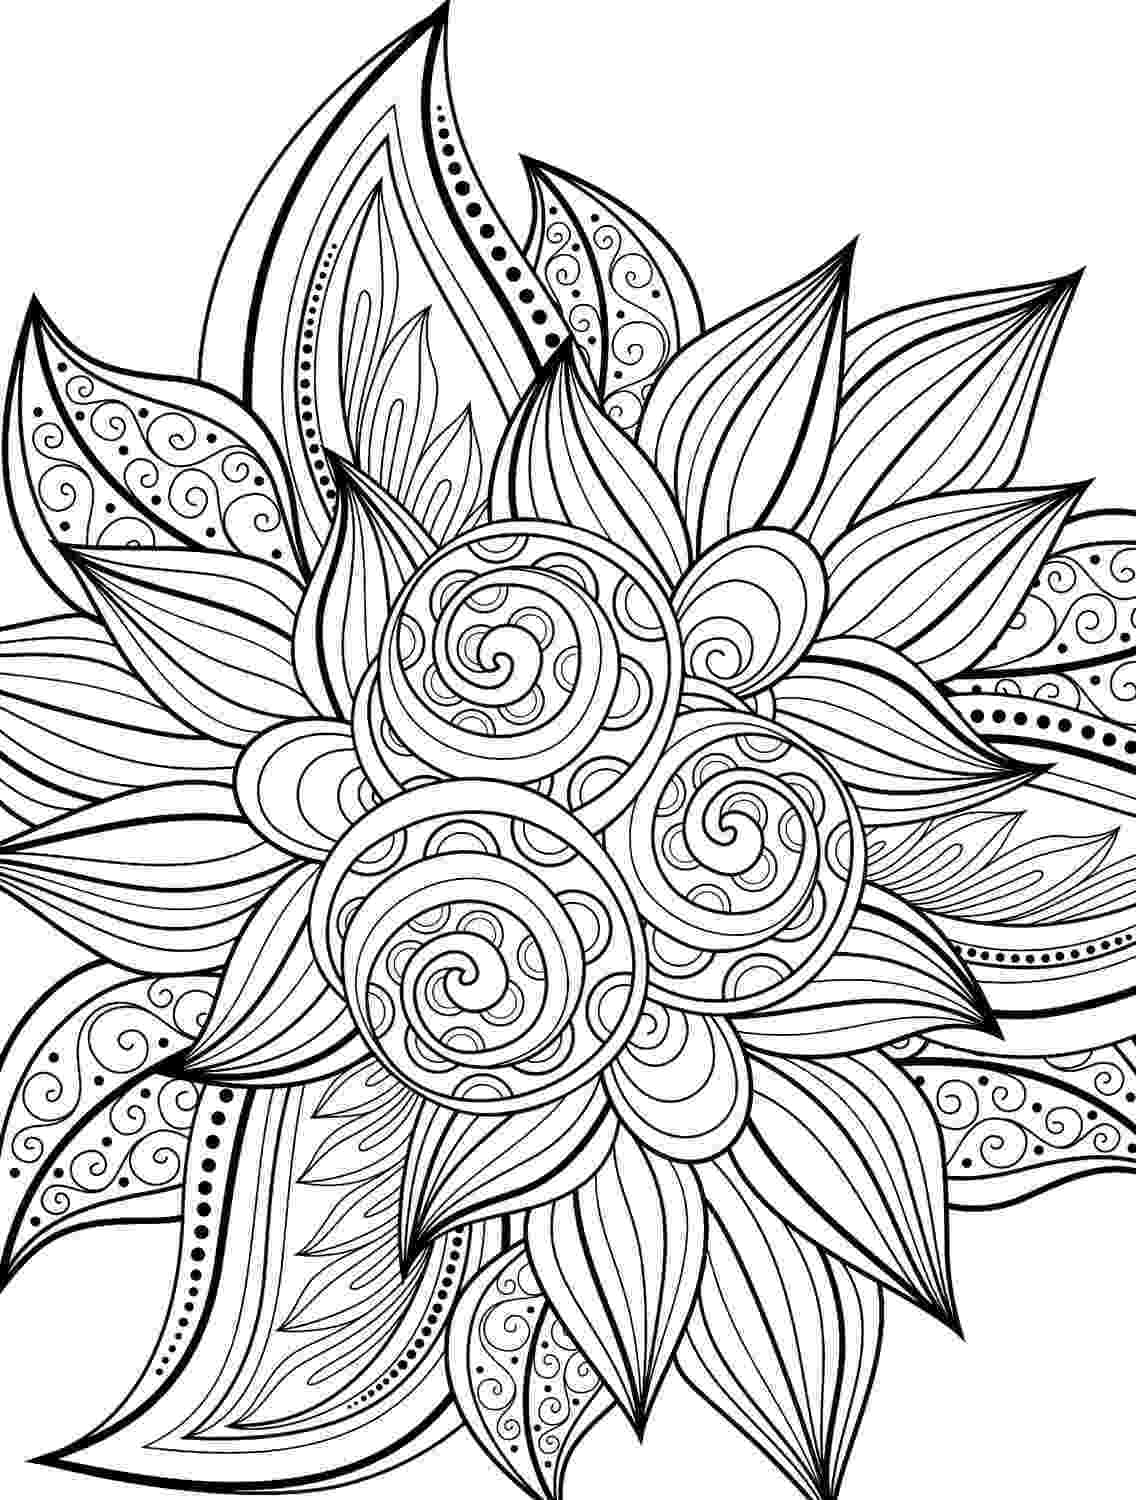 coloring pages for adults free online adult coloring pages flowers to download and print for free online pages for coloring adults free